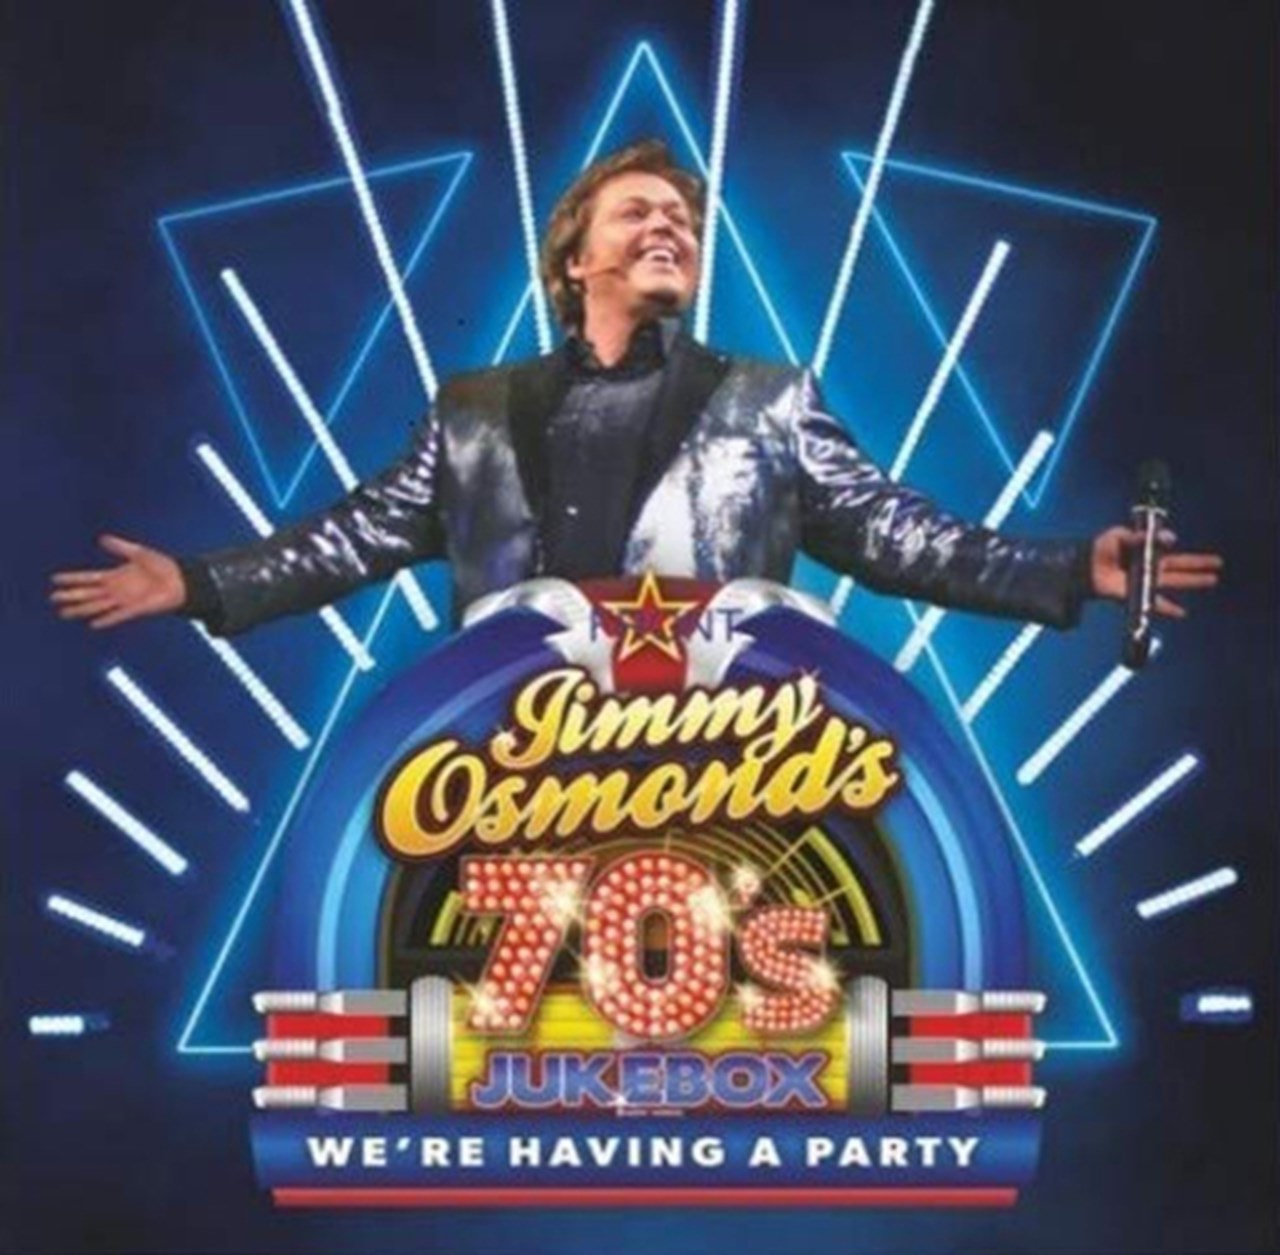 Jimmy Osmond's 70s Jukebox: We're Having a Party - 1